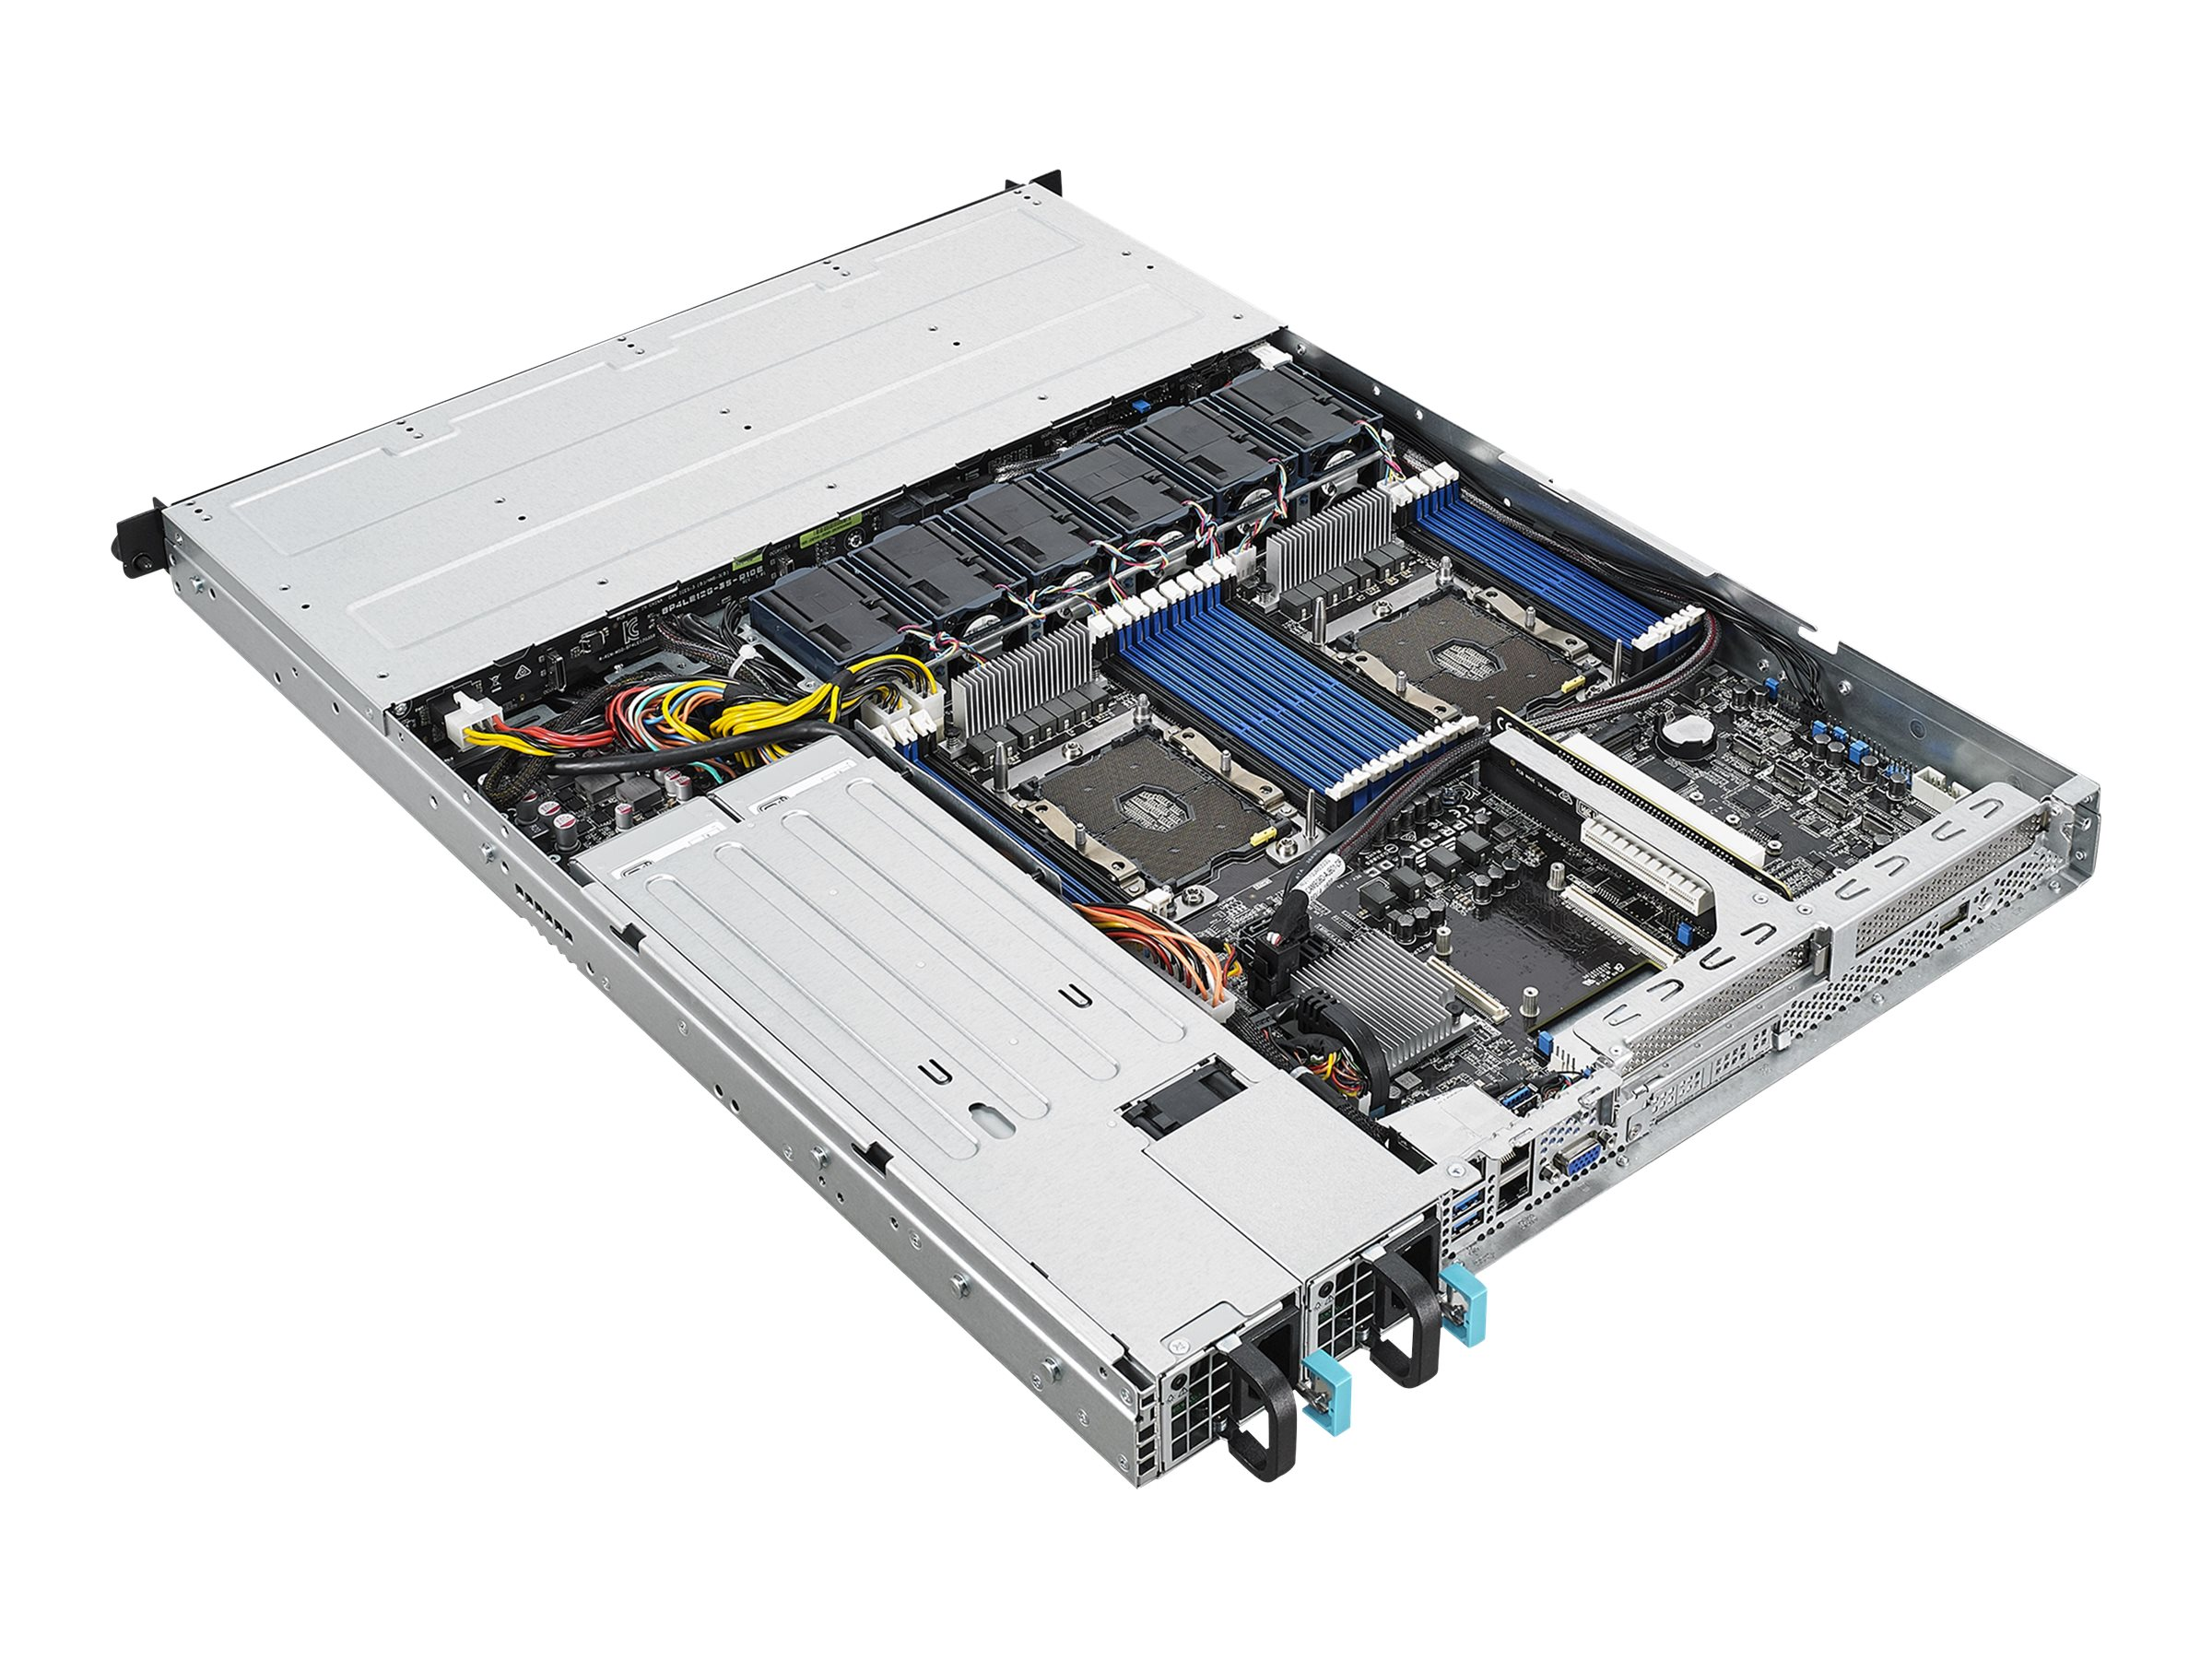 "ASUS RS500-E9-RS4 - Server - Rack-Montage - 1U - zweiweg - keine CPU - RAM 0 GB - SATA - Hot-Swap 8.9 cm (3.5"")"